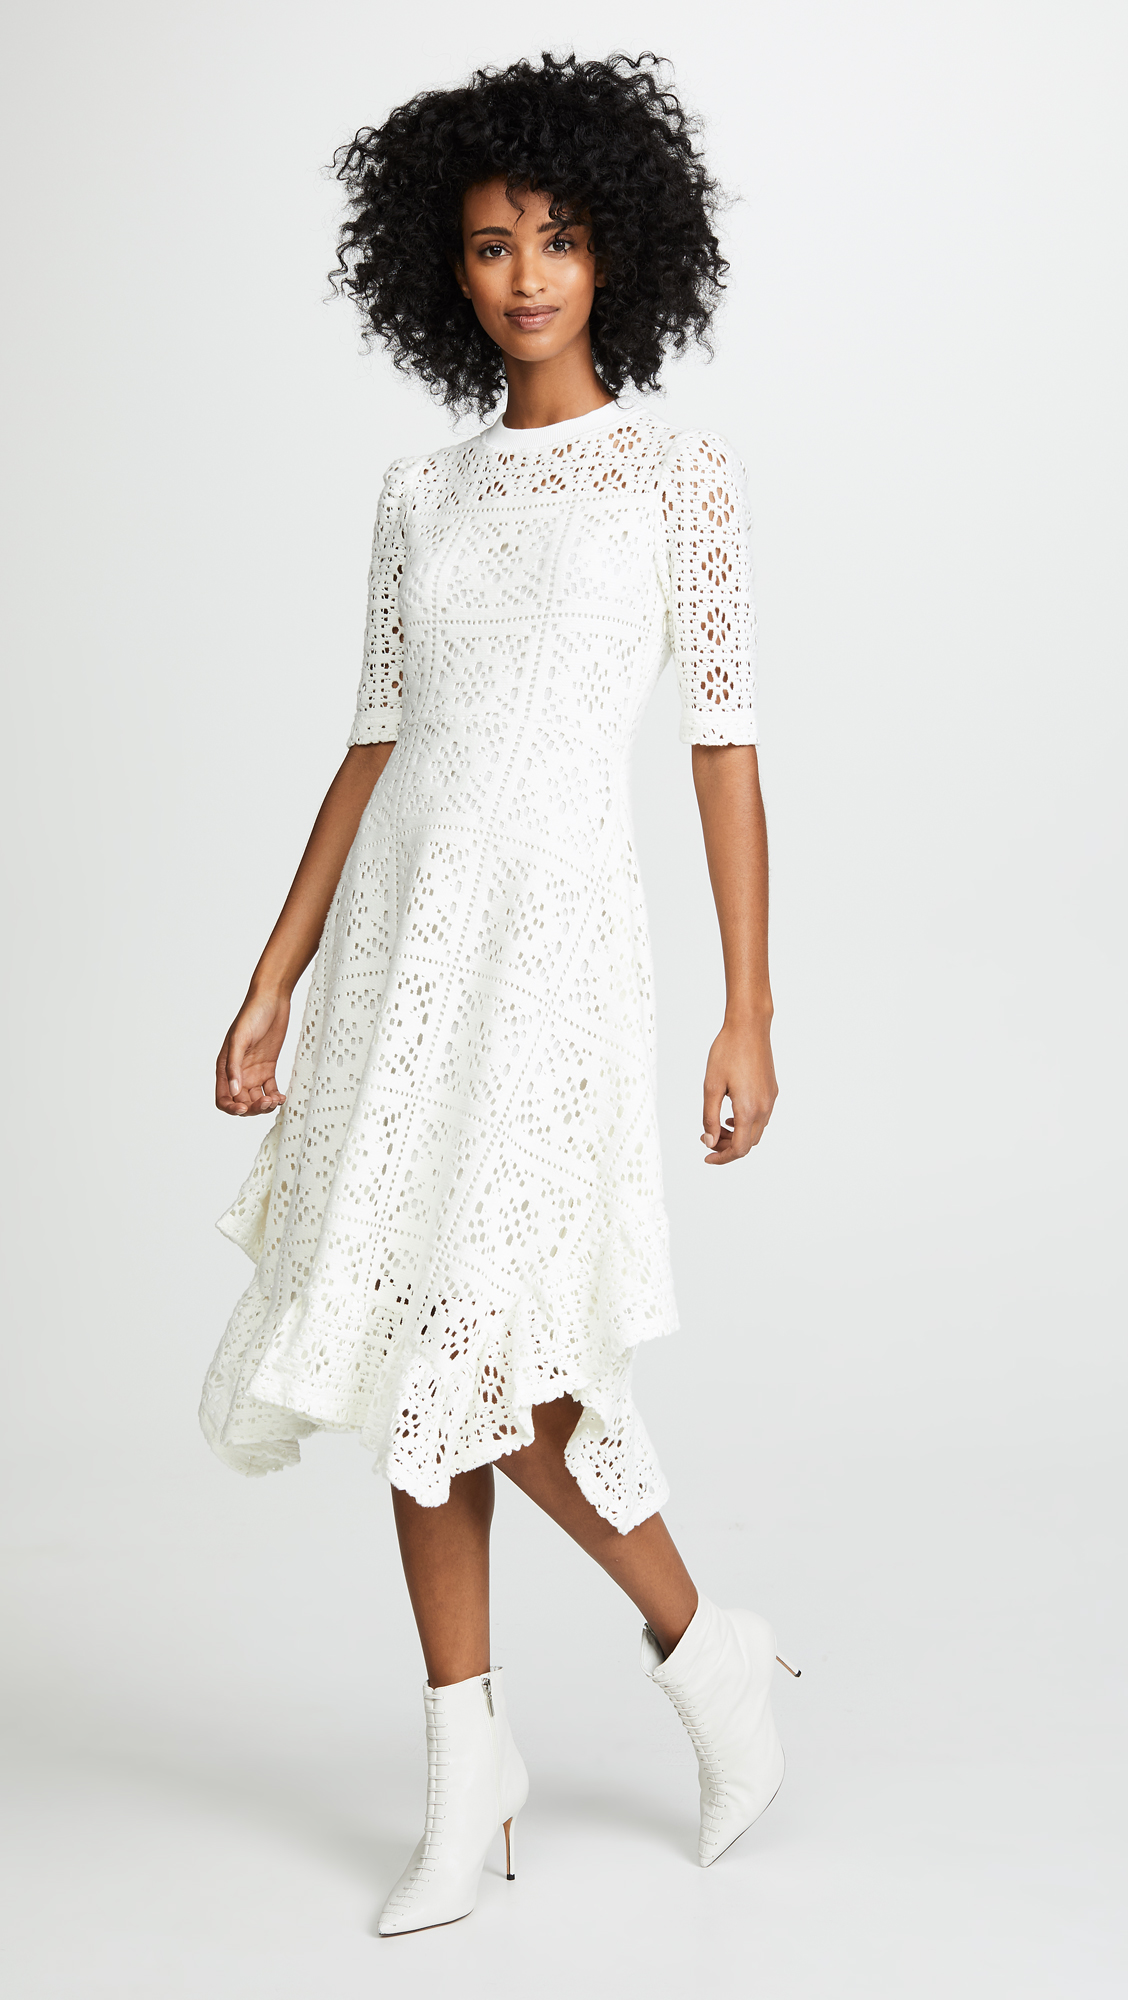 486917a9f5e Where to Find a White Rehearsal Dinner Dress in Winter